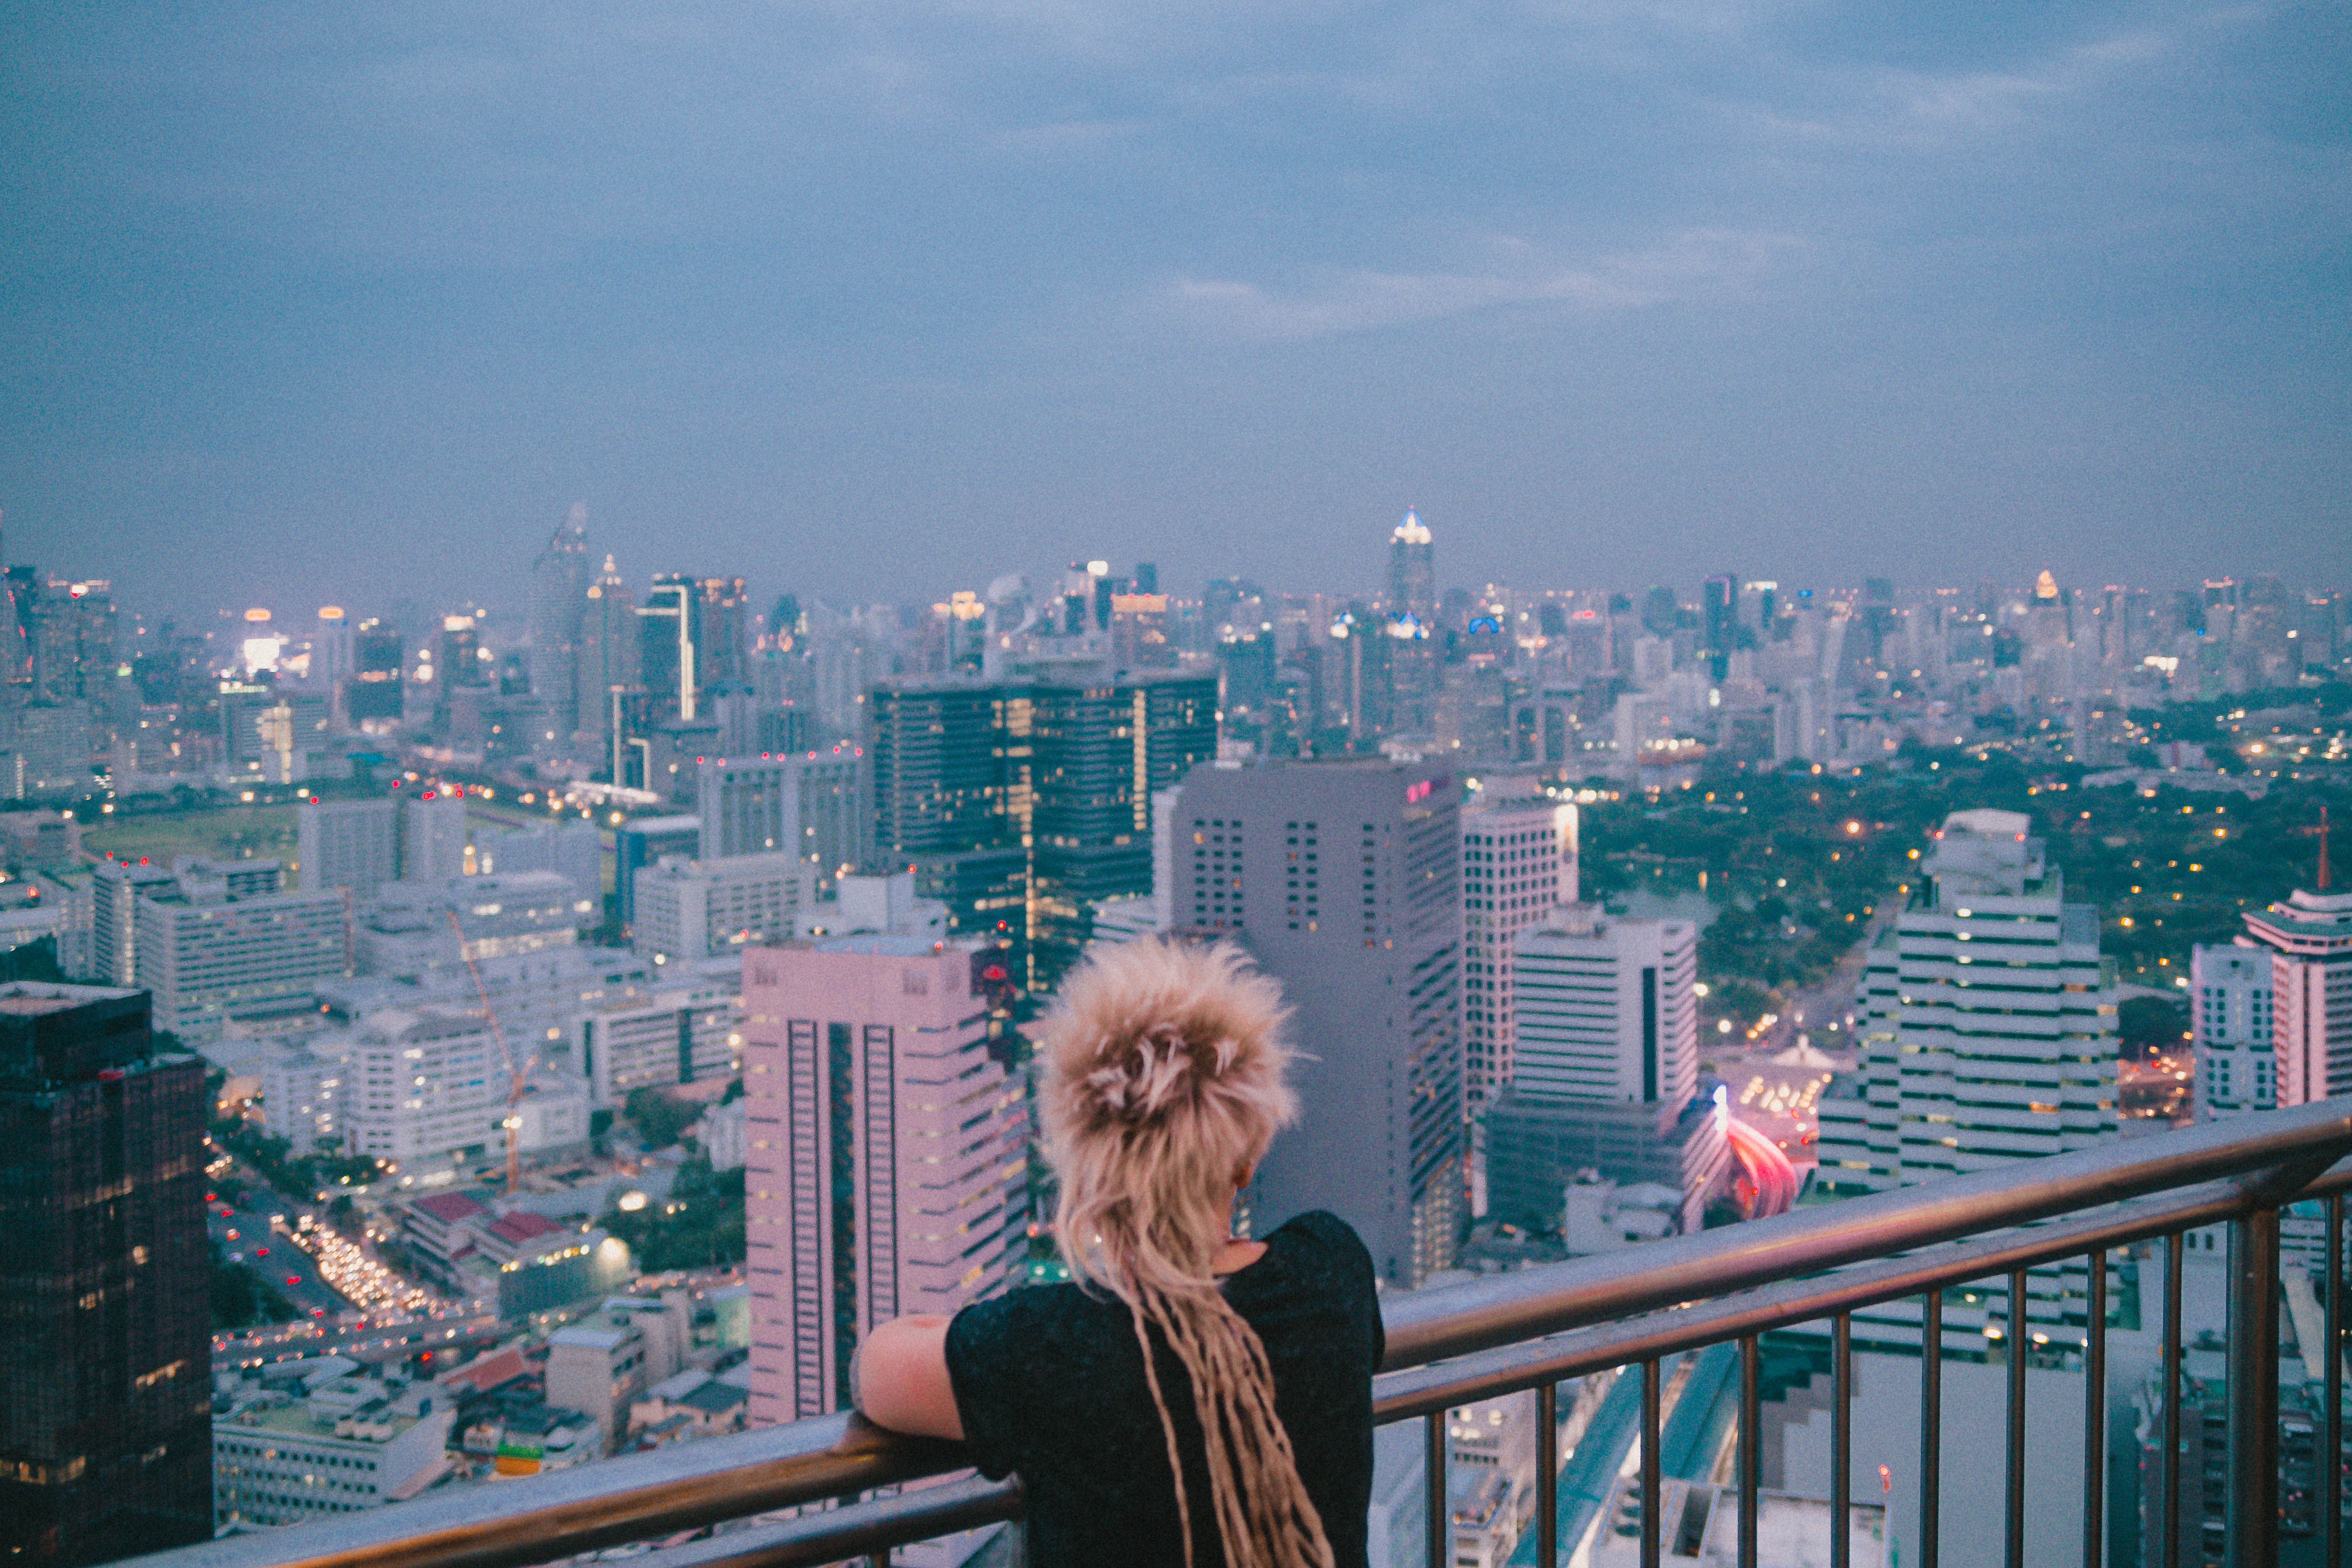 view from one of the skyscrapers in bangkok thailand south east asia city lights